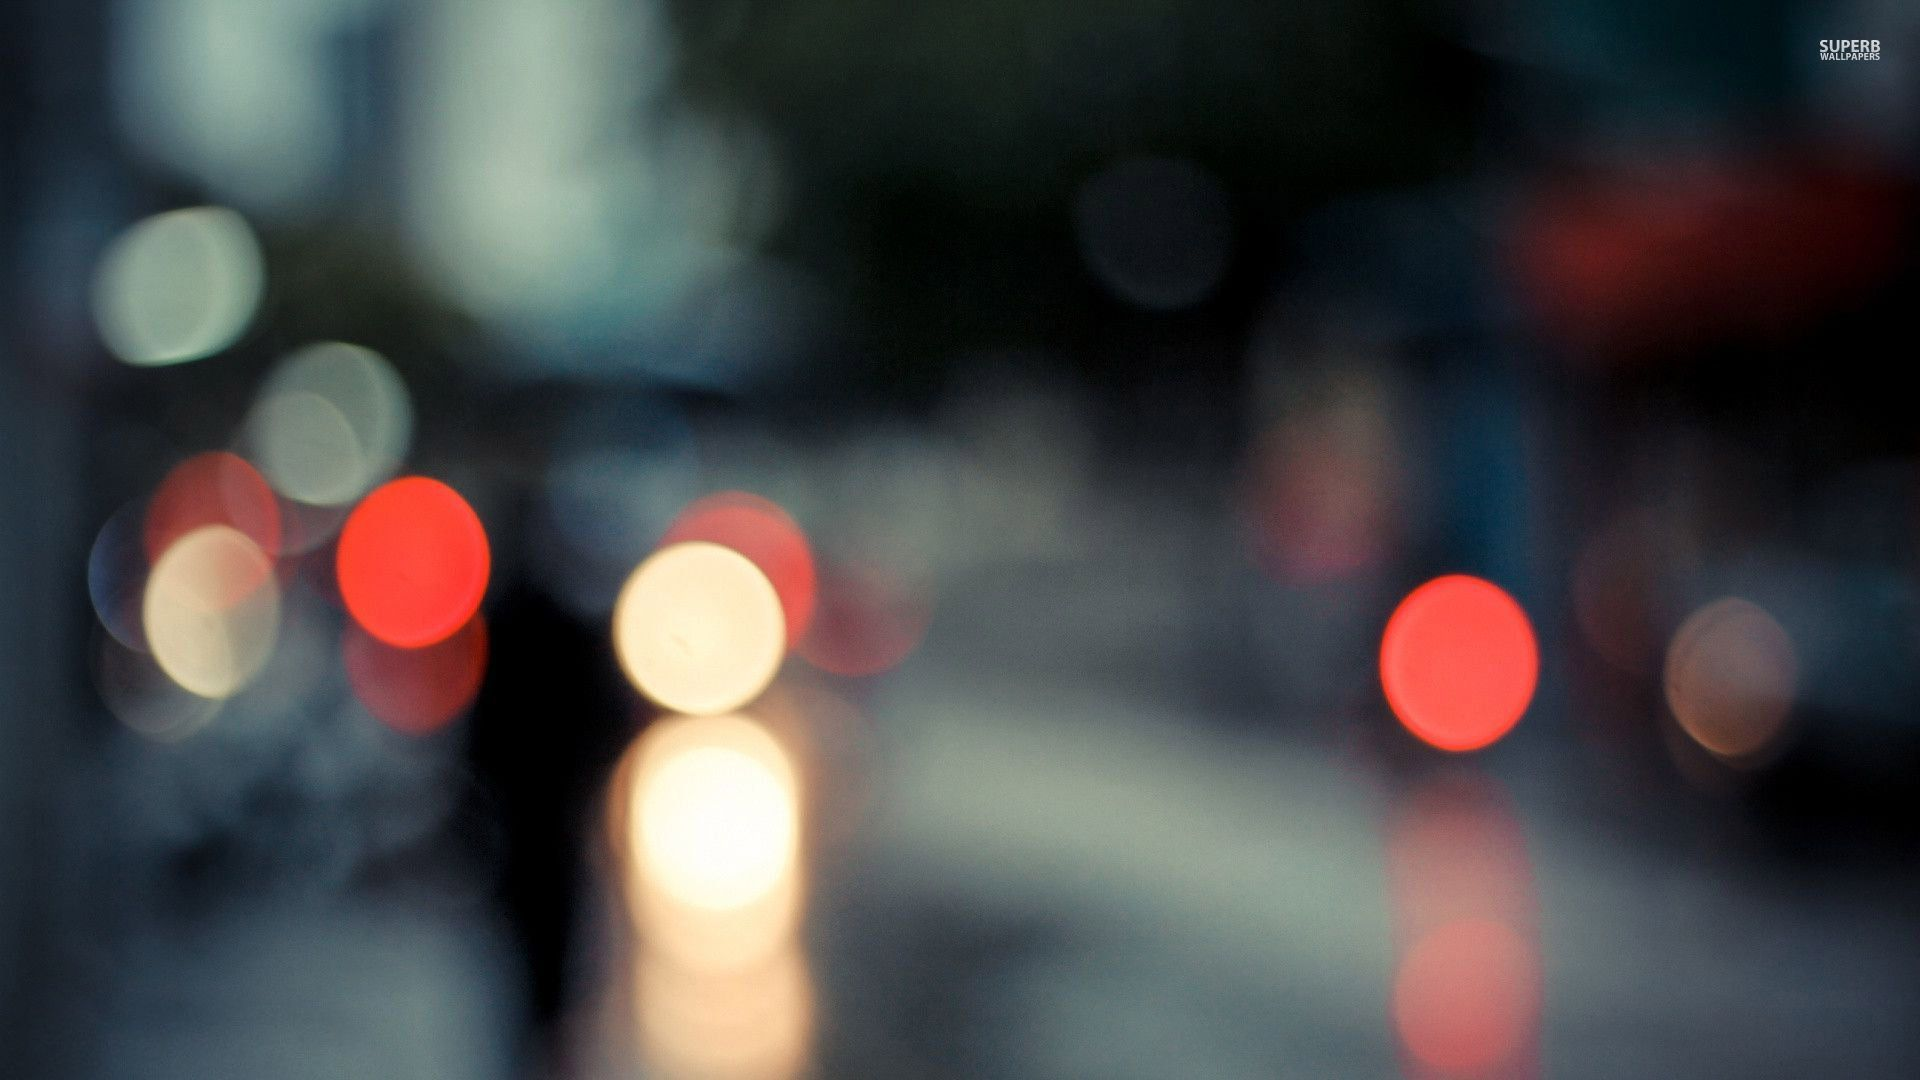 Blurry Lights Wallpapers Top Free Blurry Lights Backgrounds Wallpaperaccess Hd wallpaper lights blur city glare